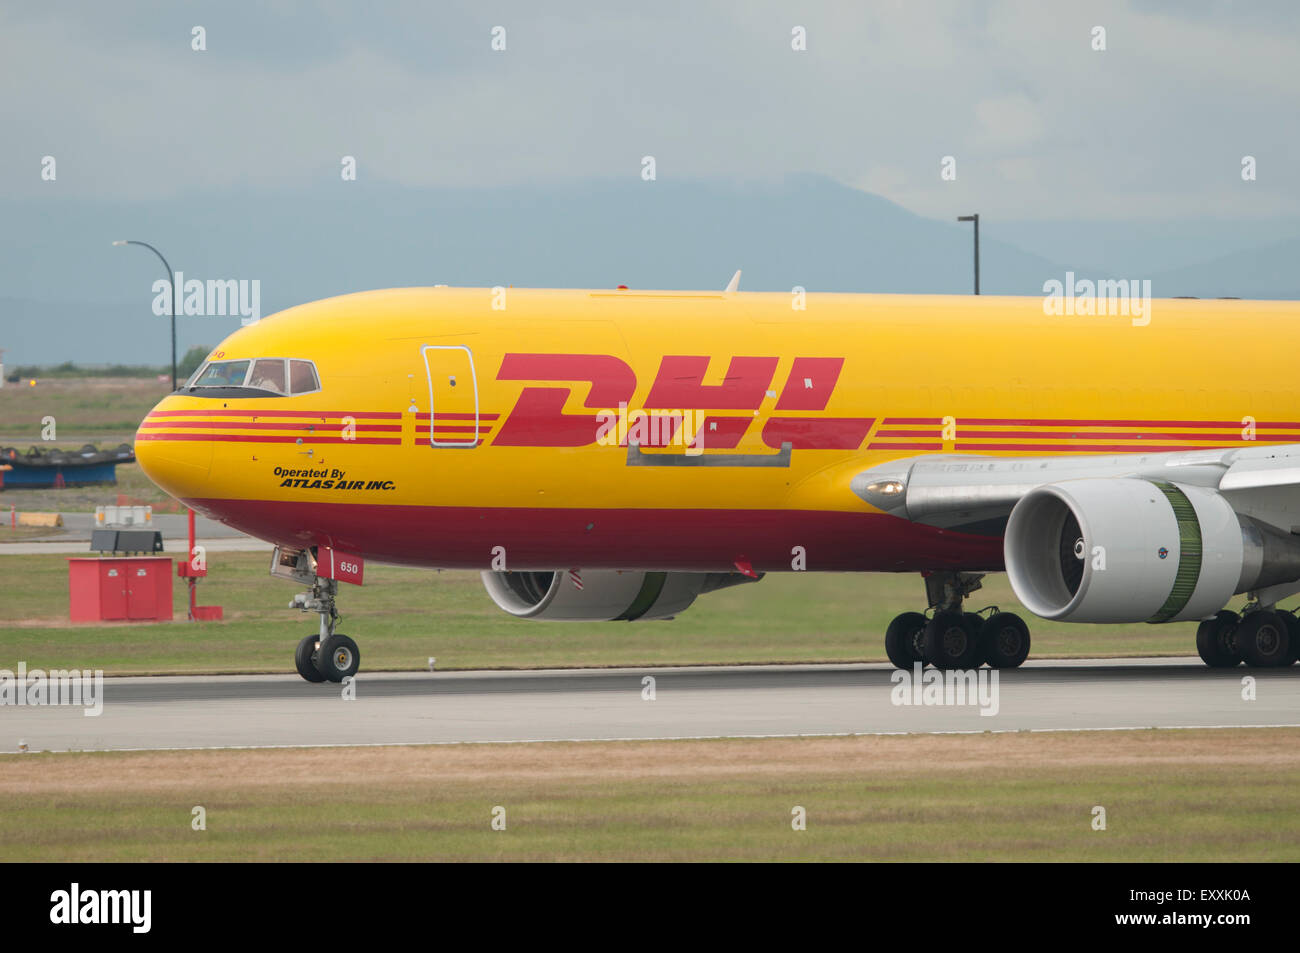 dhl atlas air boeing 767 231 er sf landete am flughafen yvr vancouver international stockfoto. Black Bedroom Furniture Sets. Home Design Ideas